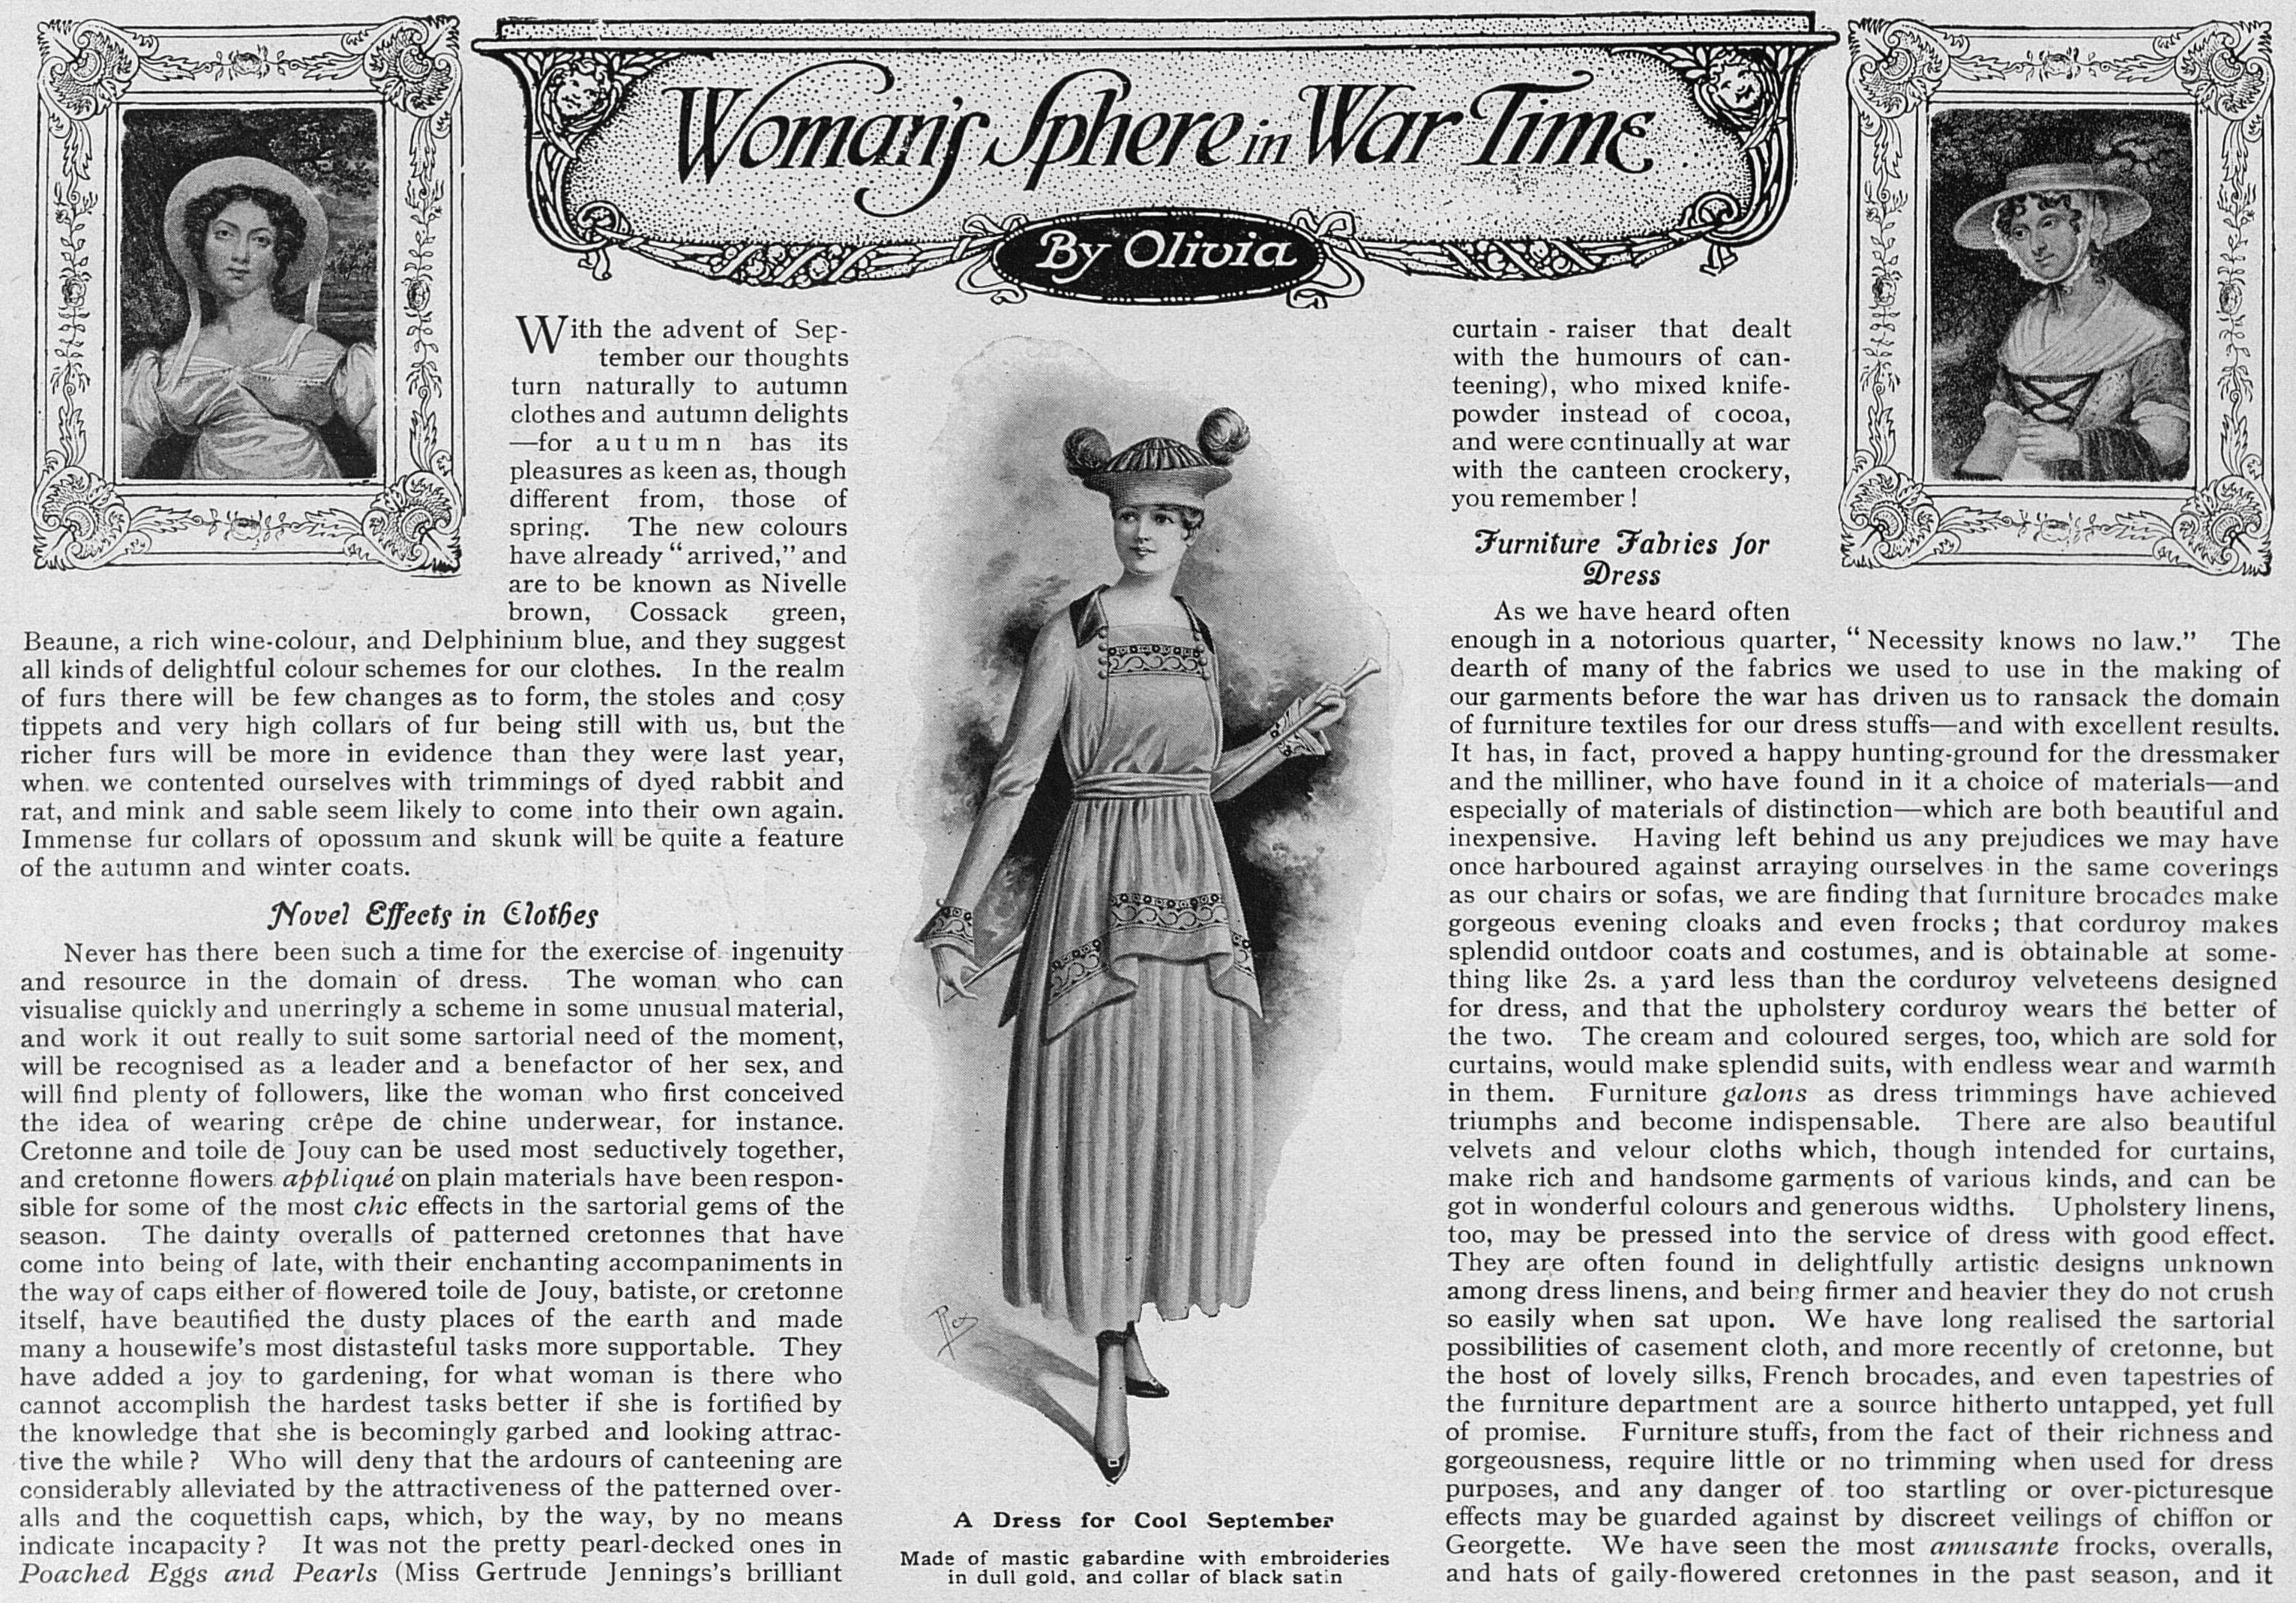 WomansSphereInWarTime_8Sep1917